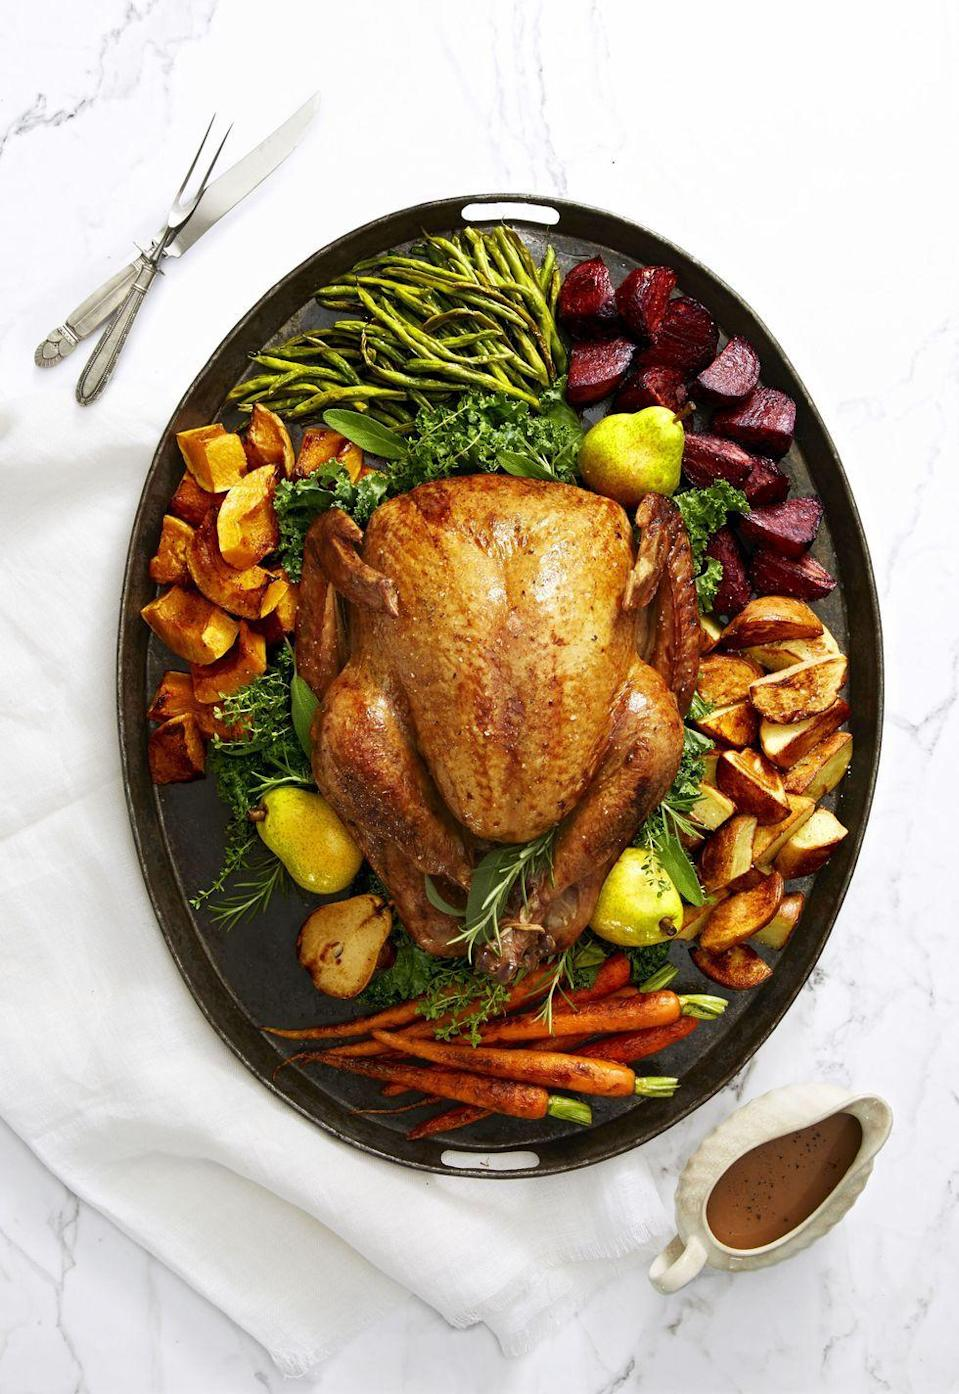 """<p>Pears roasted with the turkey get blended into pan juices for a sweet-salty, secret-ingredient gravy that'll be everyone's favorite <a href=""""https://www.goodhousekeeping.com/holidays/thanksgiving-ideas/g1202/thanksgiving-side-dishes/"""" rel=""""nofollow noopener"""" target=""""_blank"""" data-ylk=""""slk:Thanksgiving side dish"""" class=""""link rapid-noclick-resp"""">Thanksgiving side dish</a> this year.</p><p><em><a href=""""https://www.goodhousekeeping.com/food-recipes/a41080/golden-glazed-turkey-and-roasted-pear-gravy-recipe/"""" rel=""""nofollow noopener"""" target=""""_blank"""" data-ylk=""""slk:Get the recipe for Golden Glazed Turkey and Roasted Pear Gravy »"""" class=""""link rapid-noclick-resp"""">Get the recipe for Golden Glazed Turkey and Roasted Pear Gravy »</a></em></p>"""